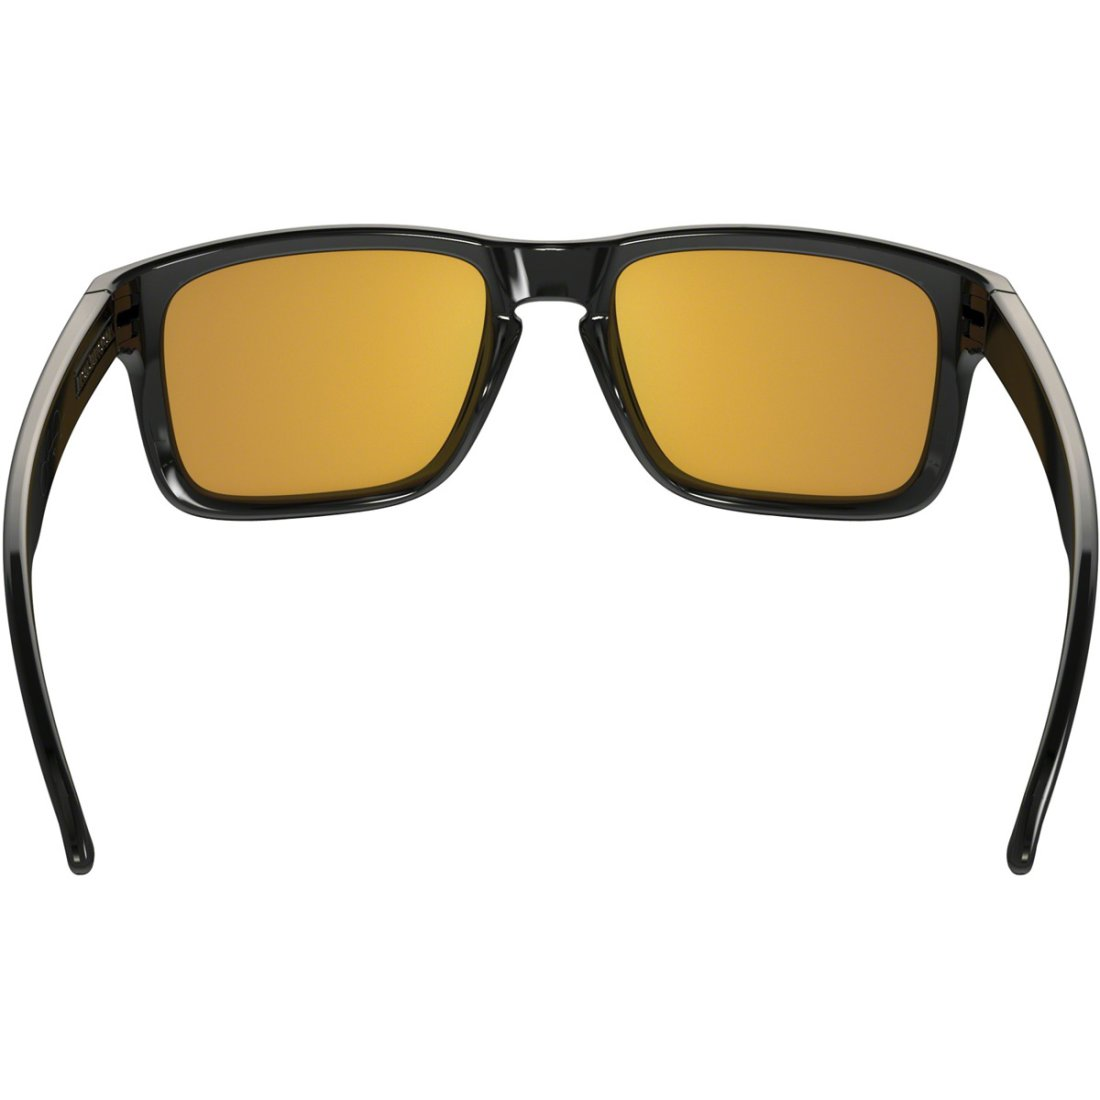 a02ec36b3308d Óculos de sol OAKLEY Holbrook Shaun White Signature Series Polished Black    24K Iridium